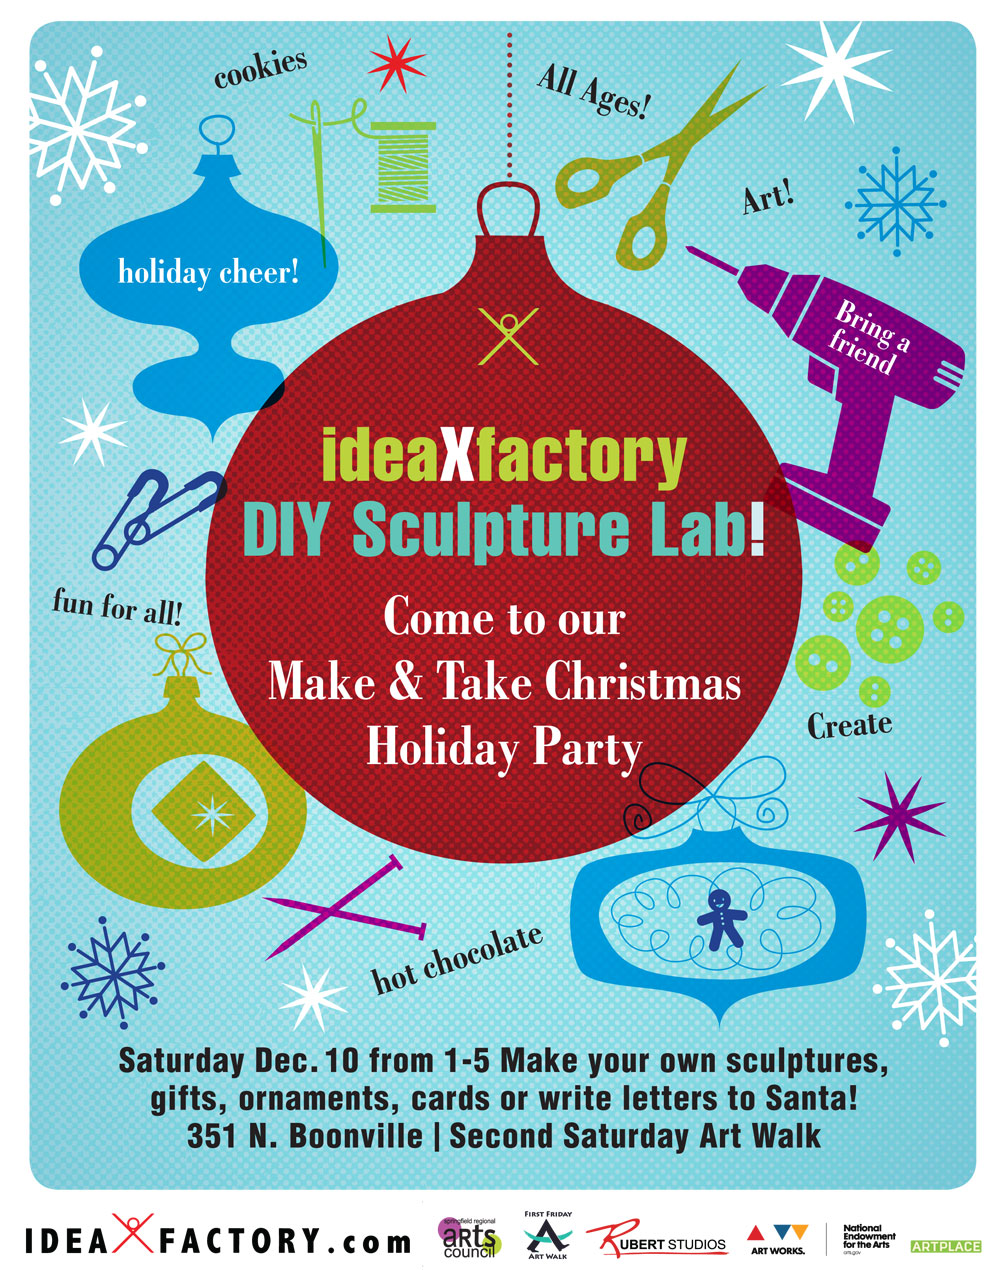 Make & Take Christmas Holiday Party